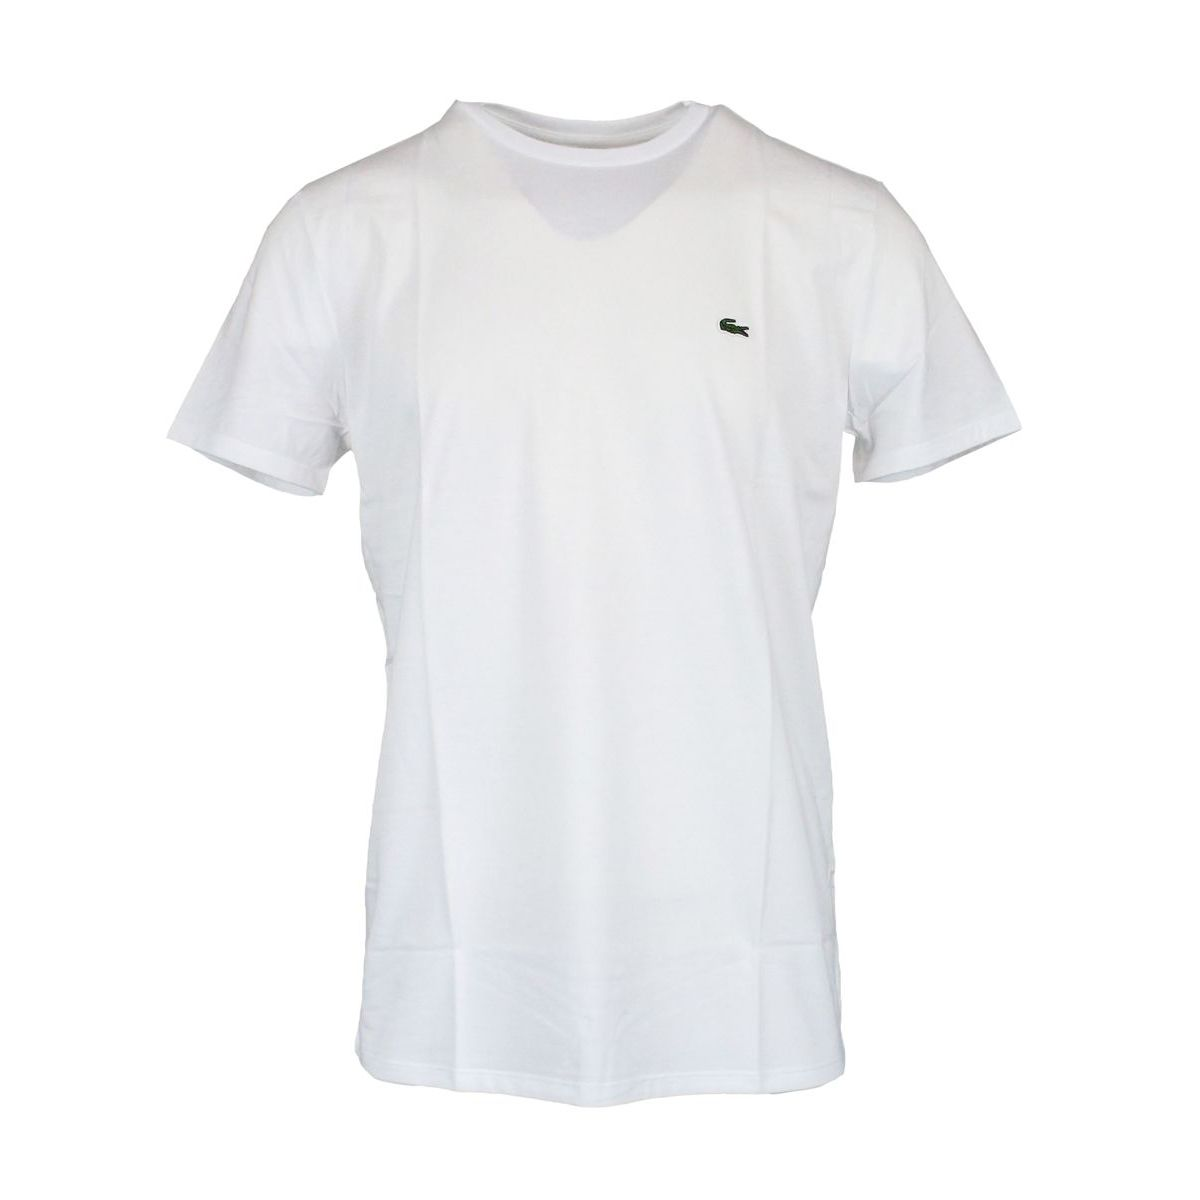 Crew-neck t-shirt with logo embroidery White Lacoste